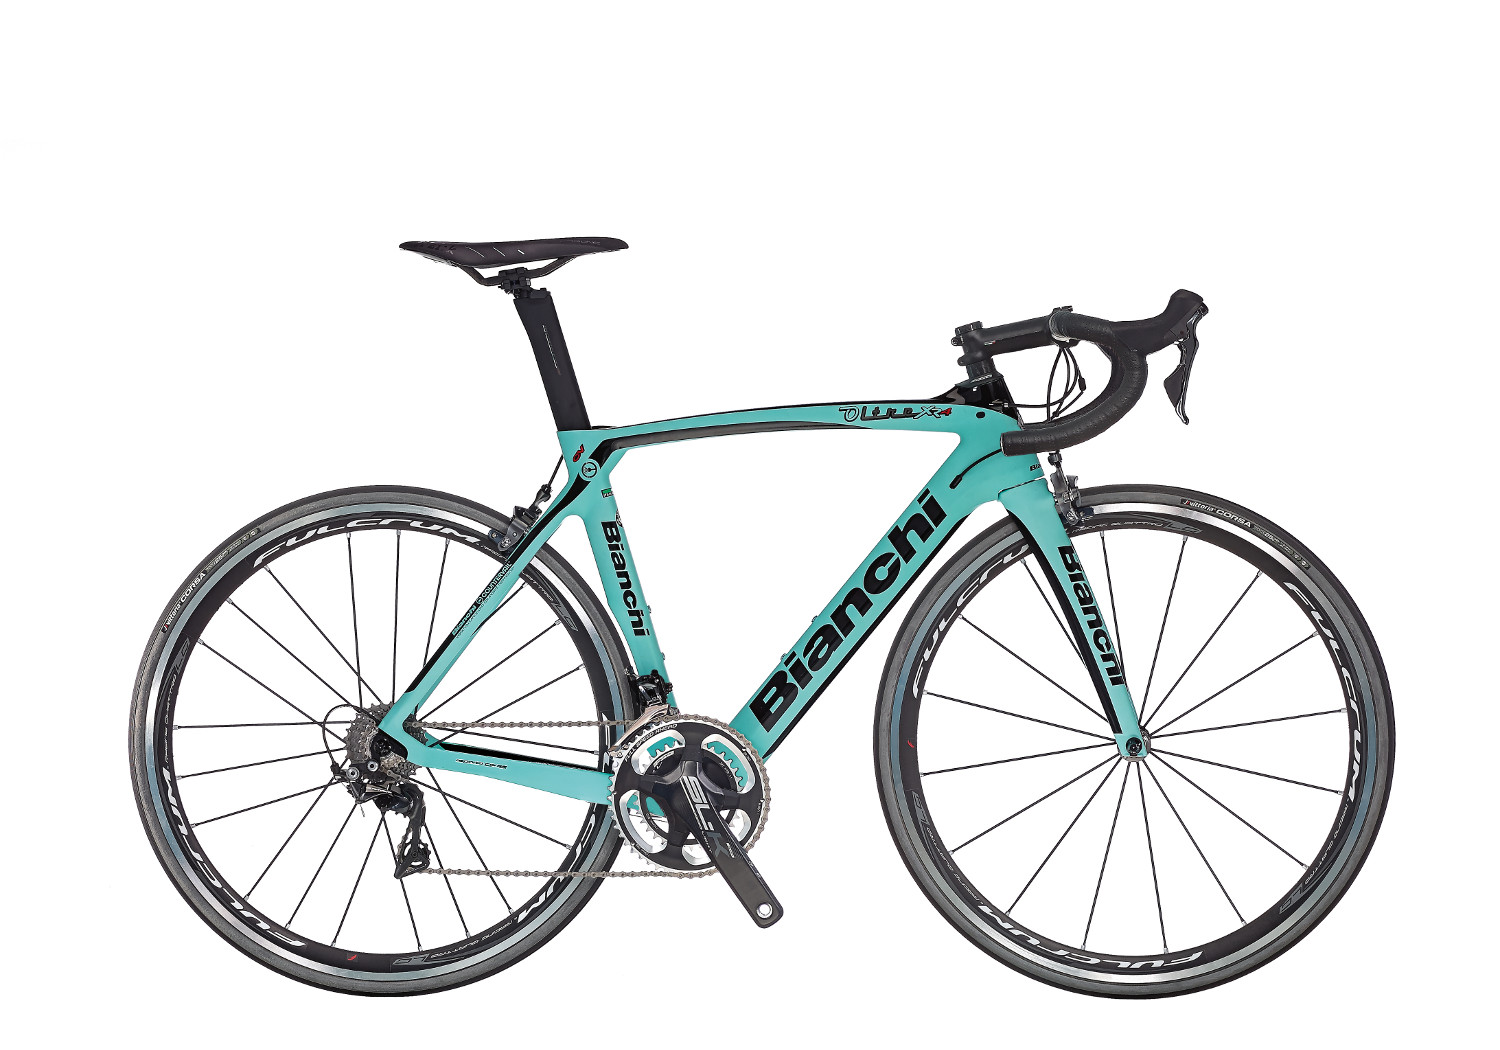 Bianchi Oltre XR4 Dura Ace mix (2017)